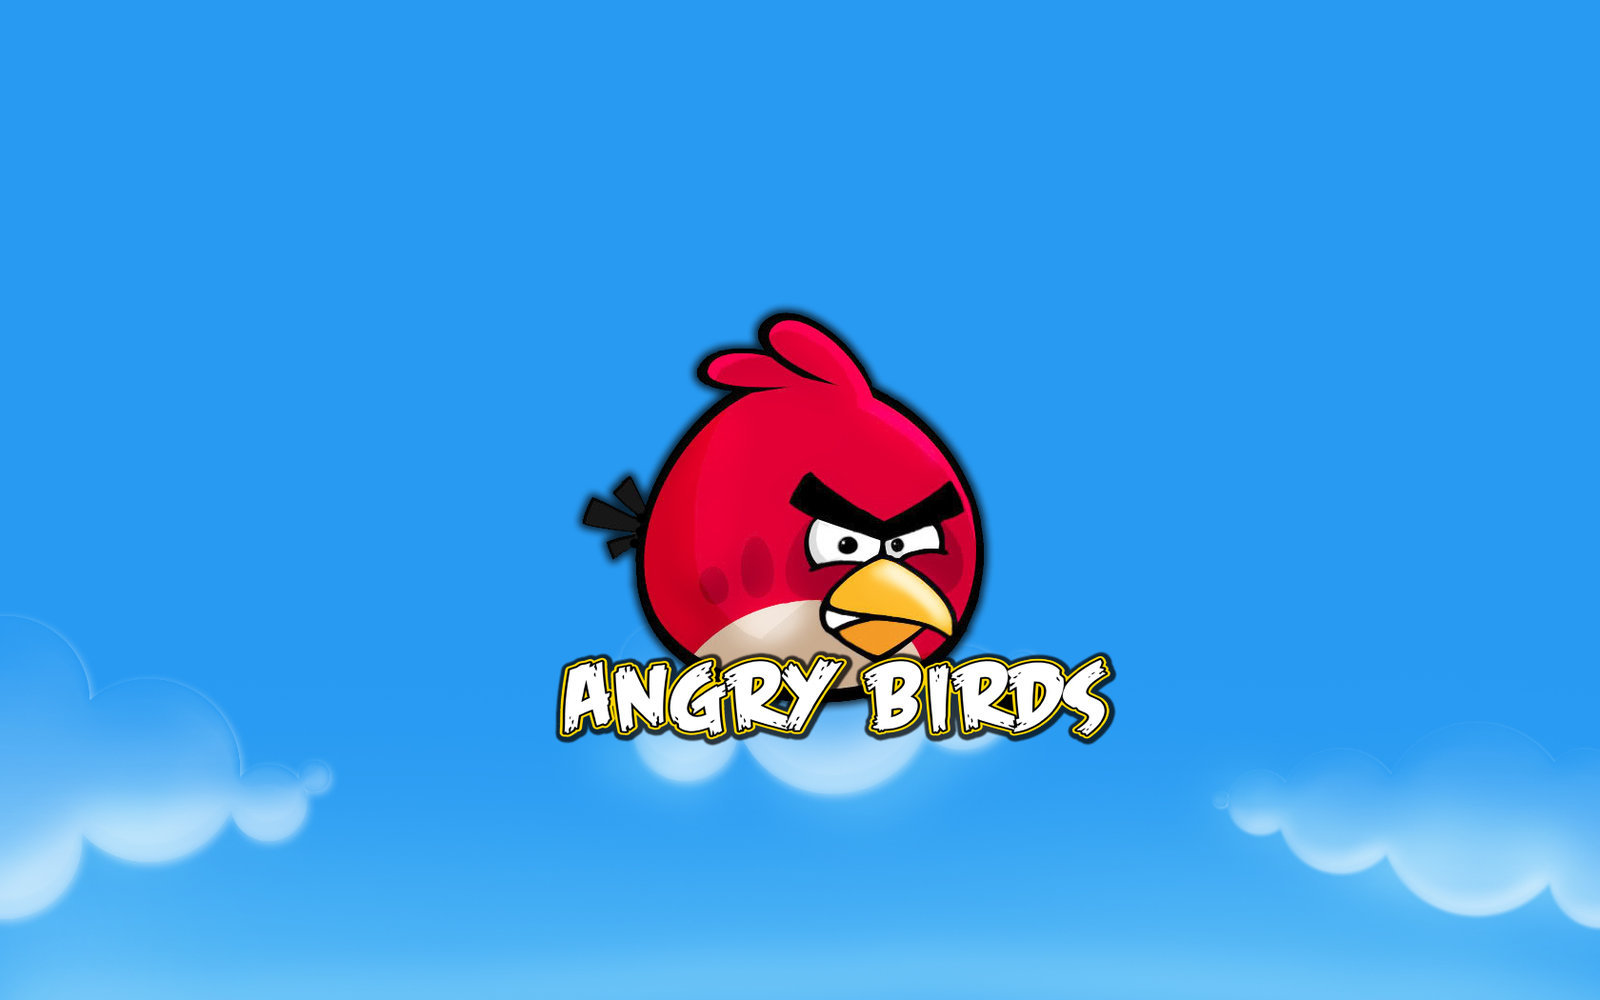 Images Of Angry Birds Characters: Angry Birds Characters Info